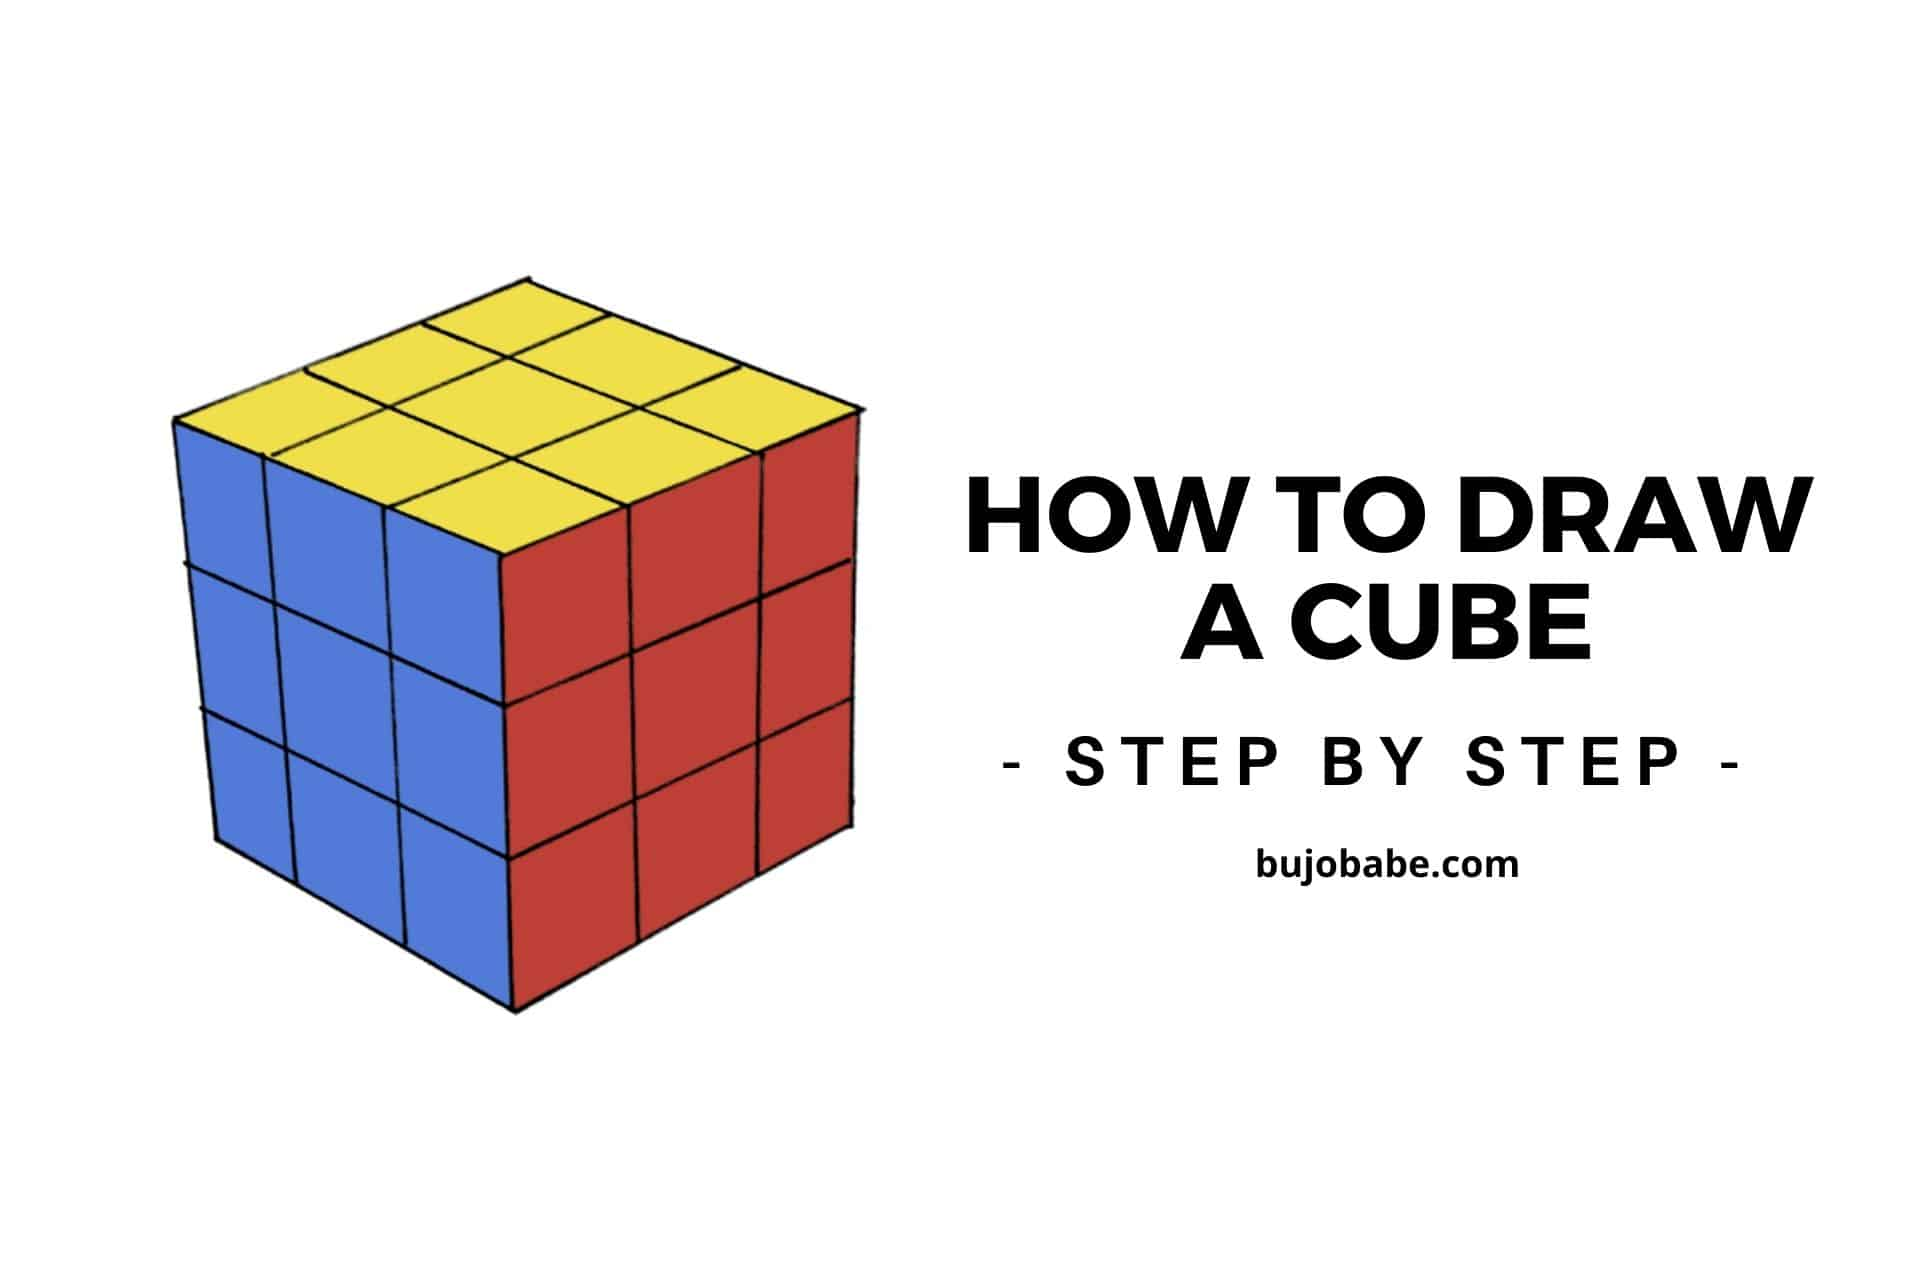 how to draw a cub step by step